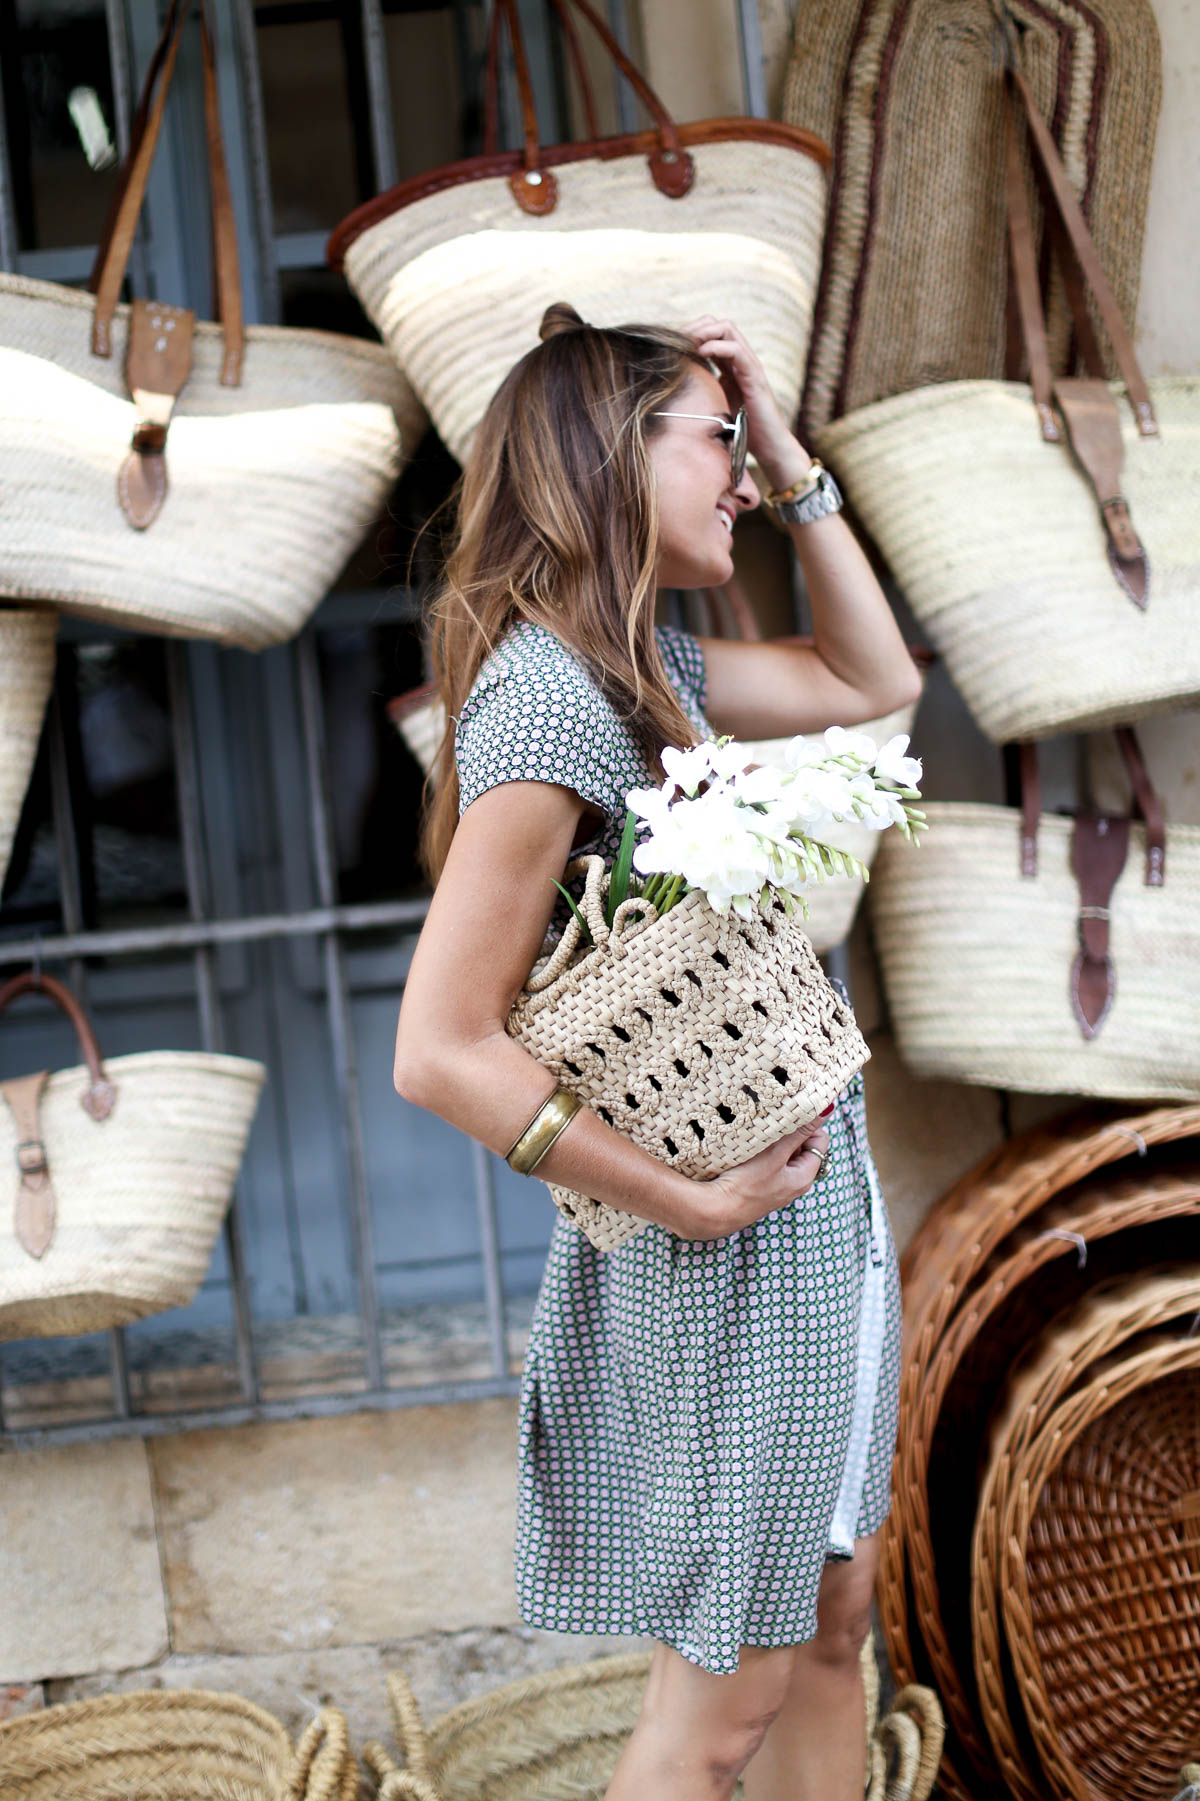 THE GIRL OF THE STRAW BAGS-101213-bartabacmode